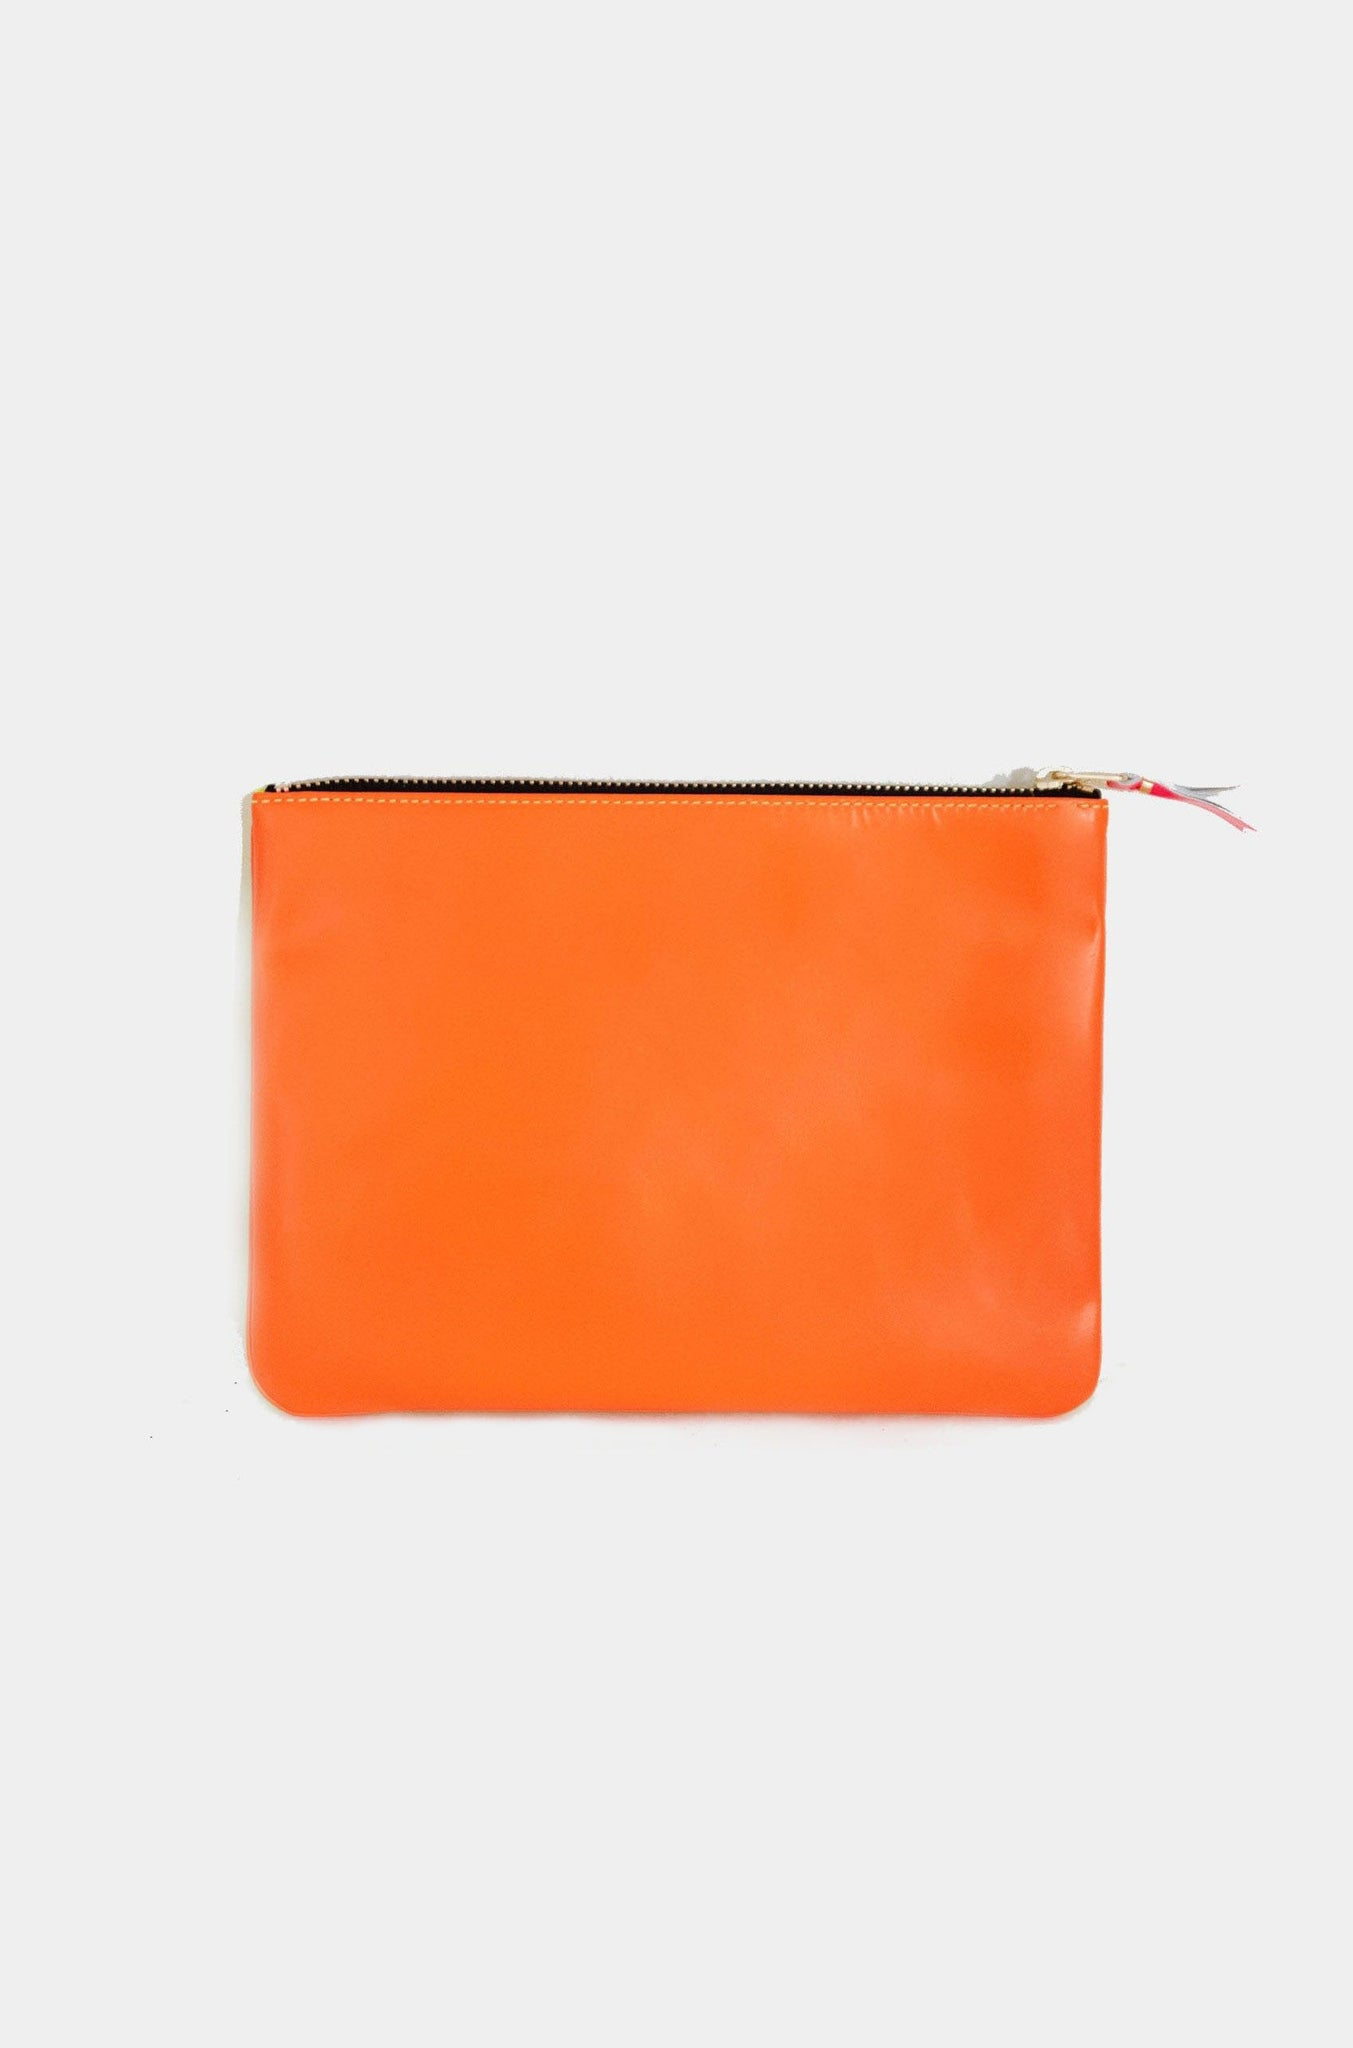 super fluo large pouch, yellow and orange